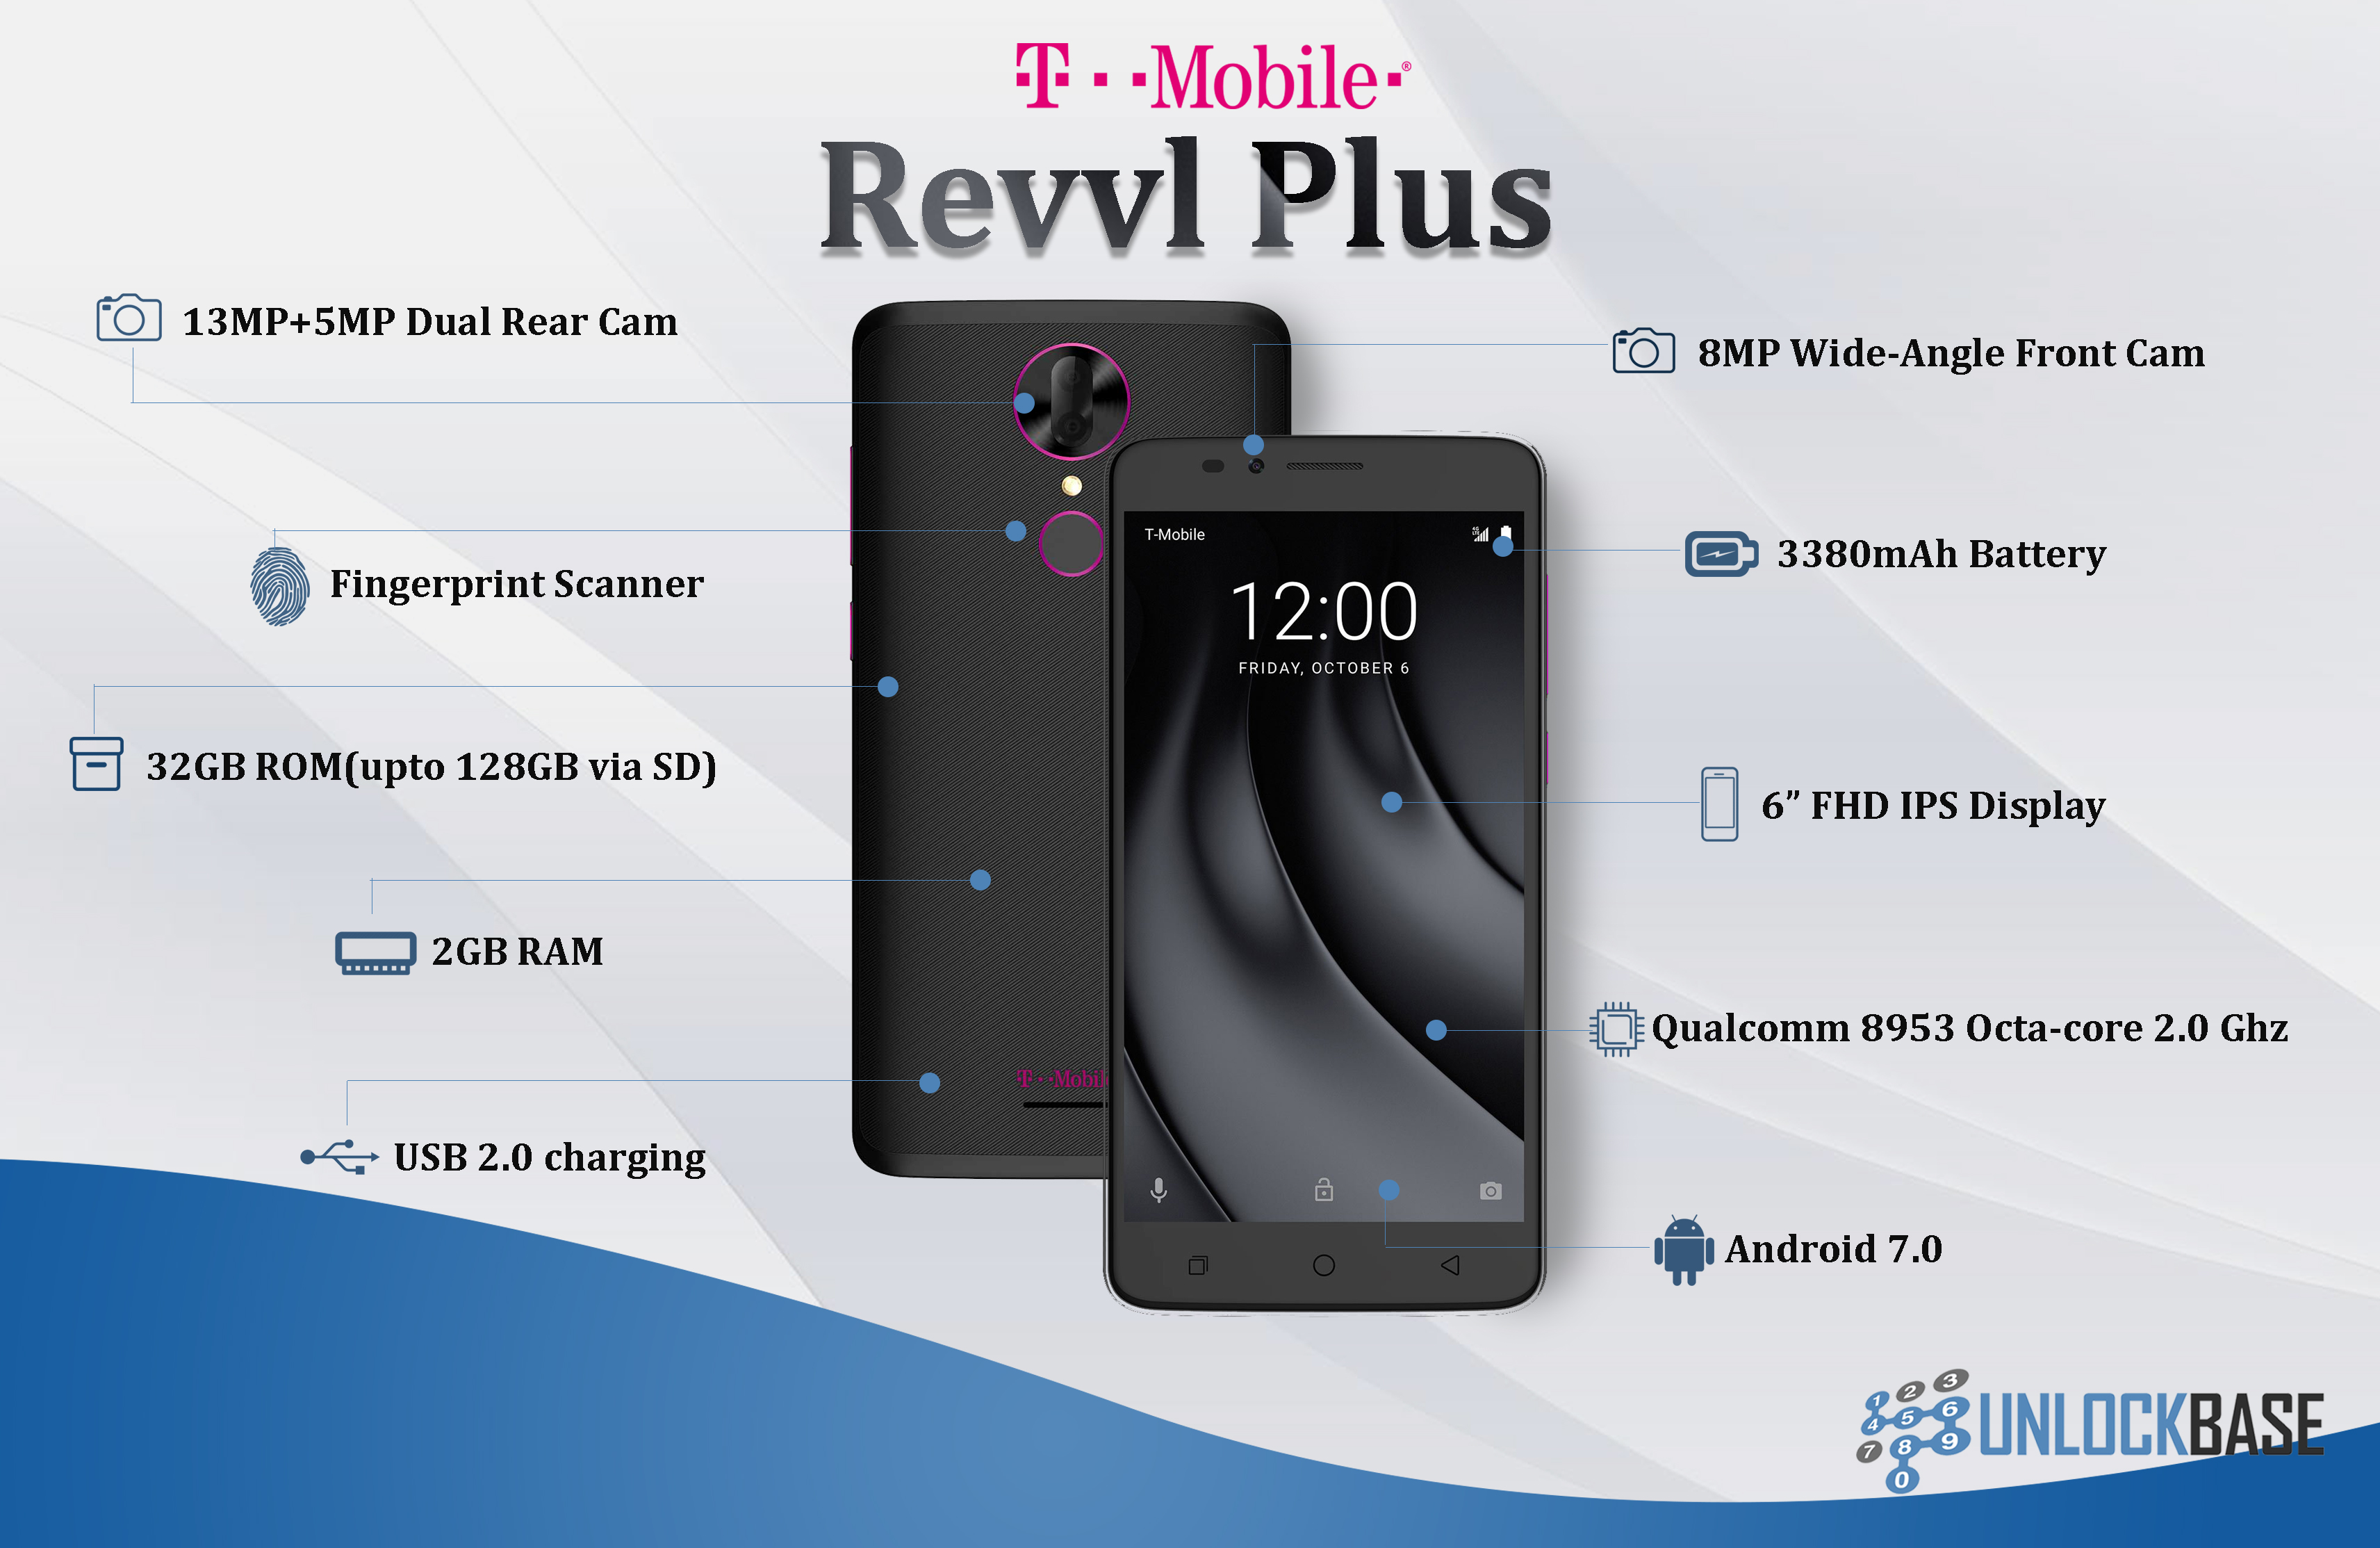 T-Mobile Revvl Plus: Is This Budget Phone Truly